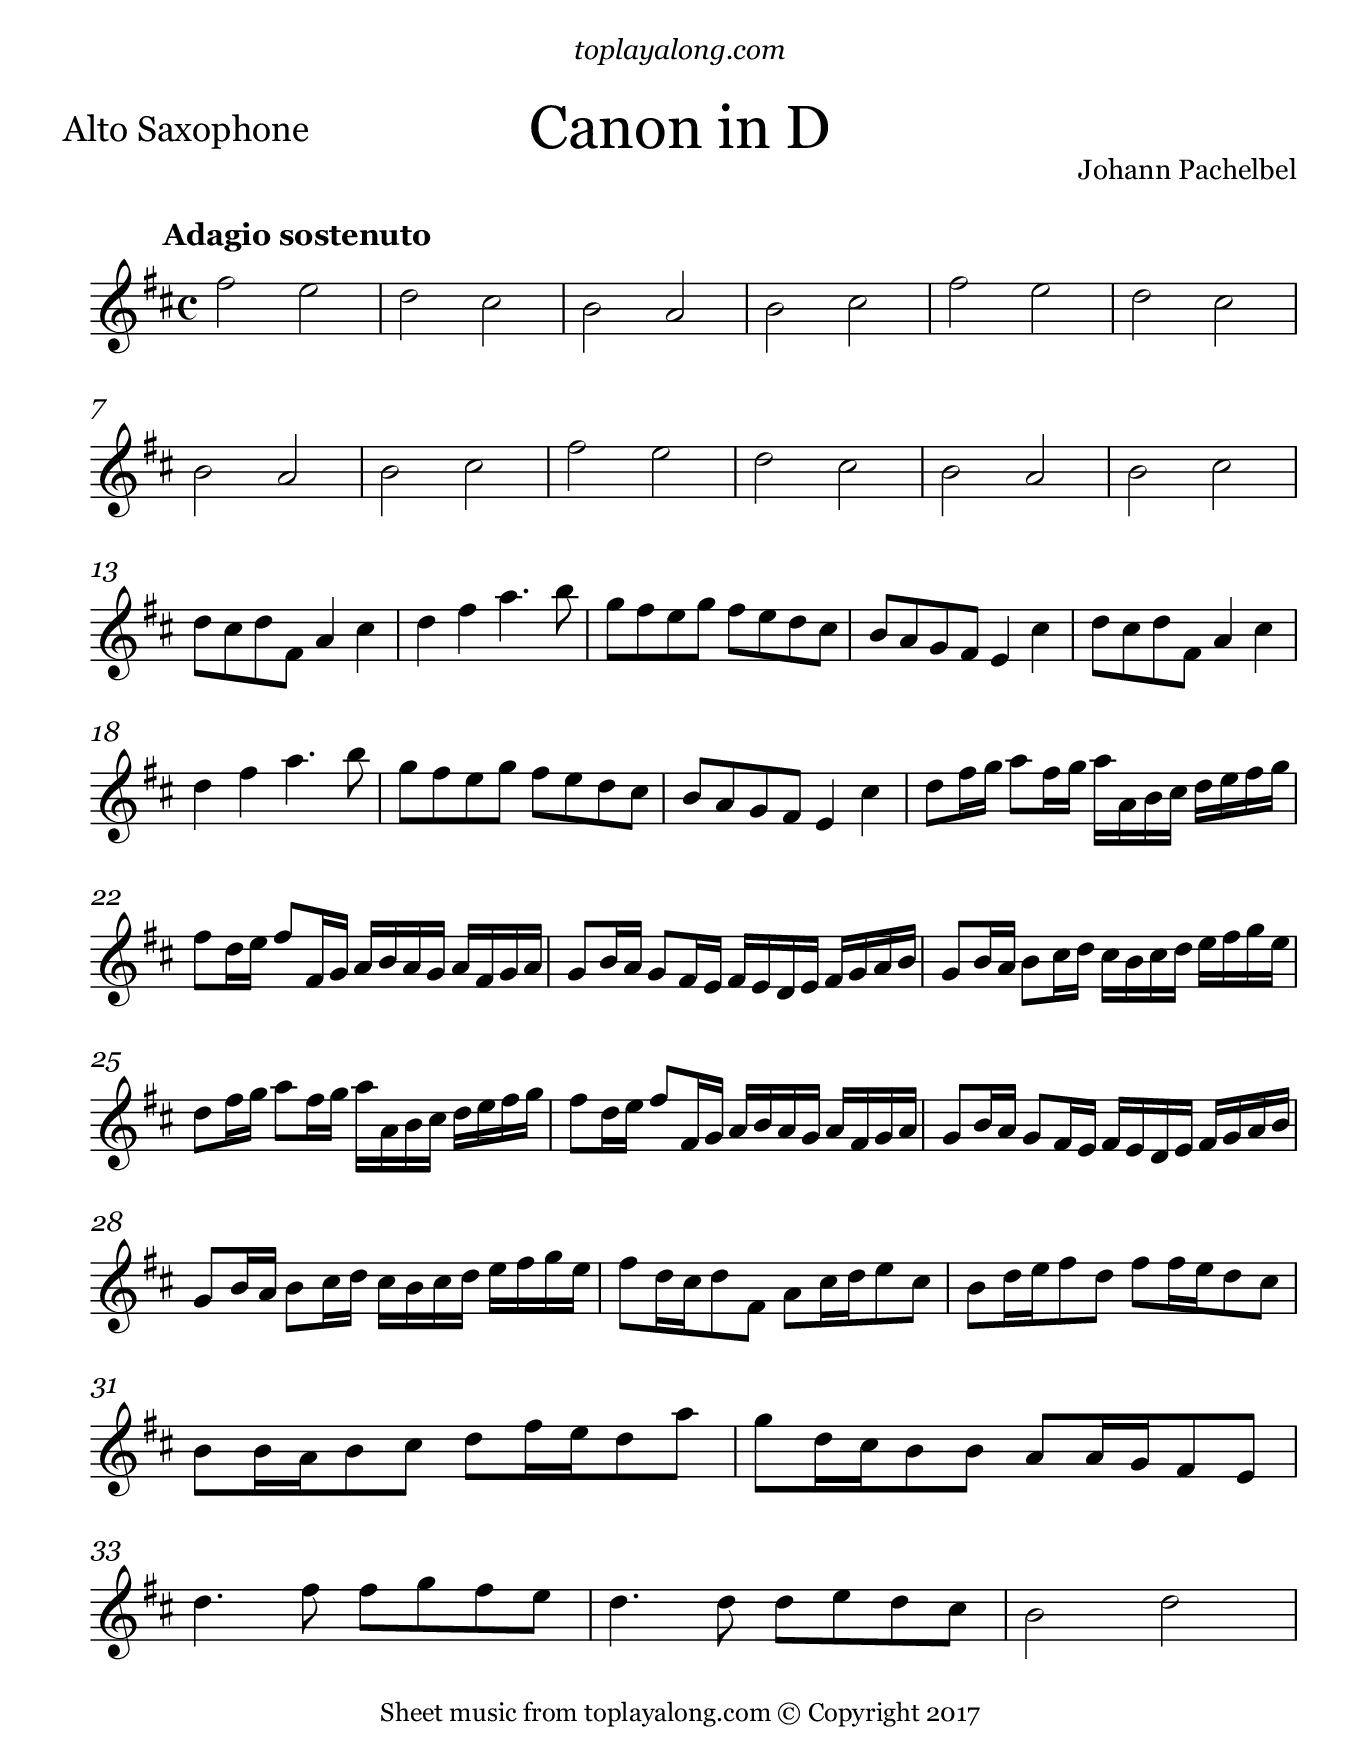 Canon in D by Pachelbel. Sheet music for Alto Sax, page 1.